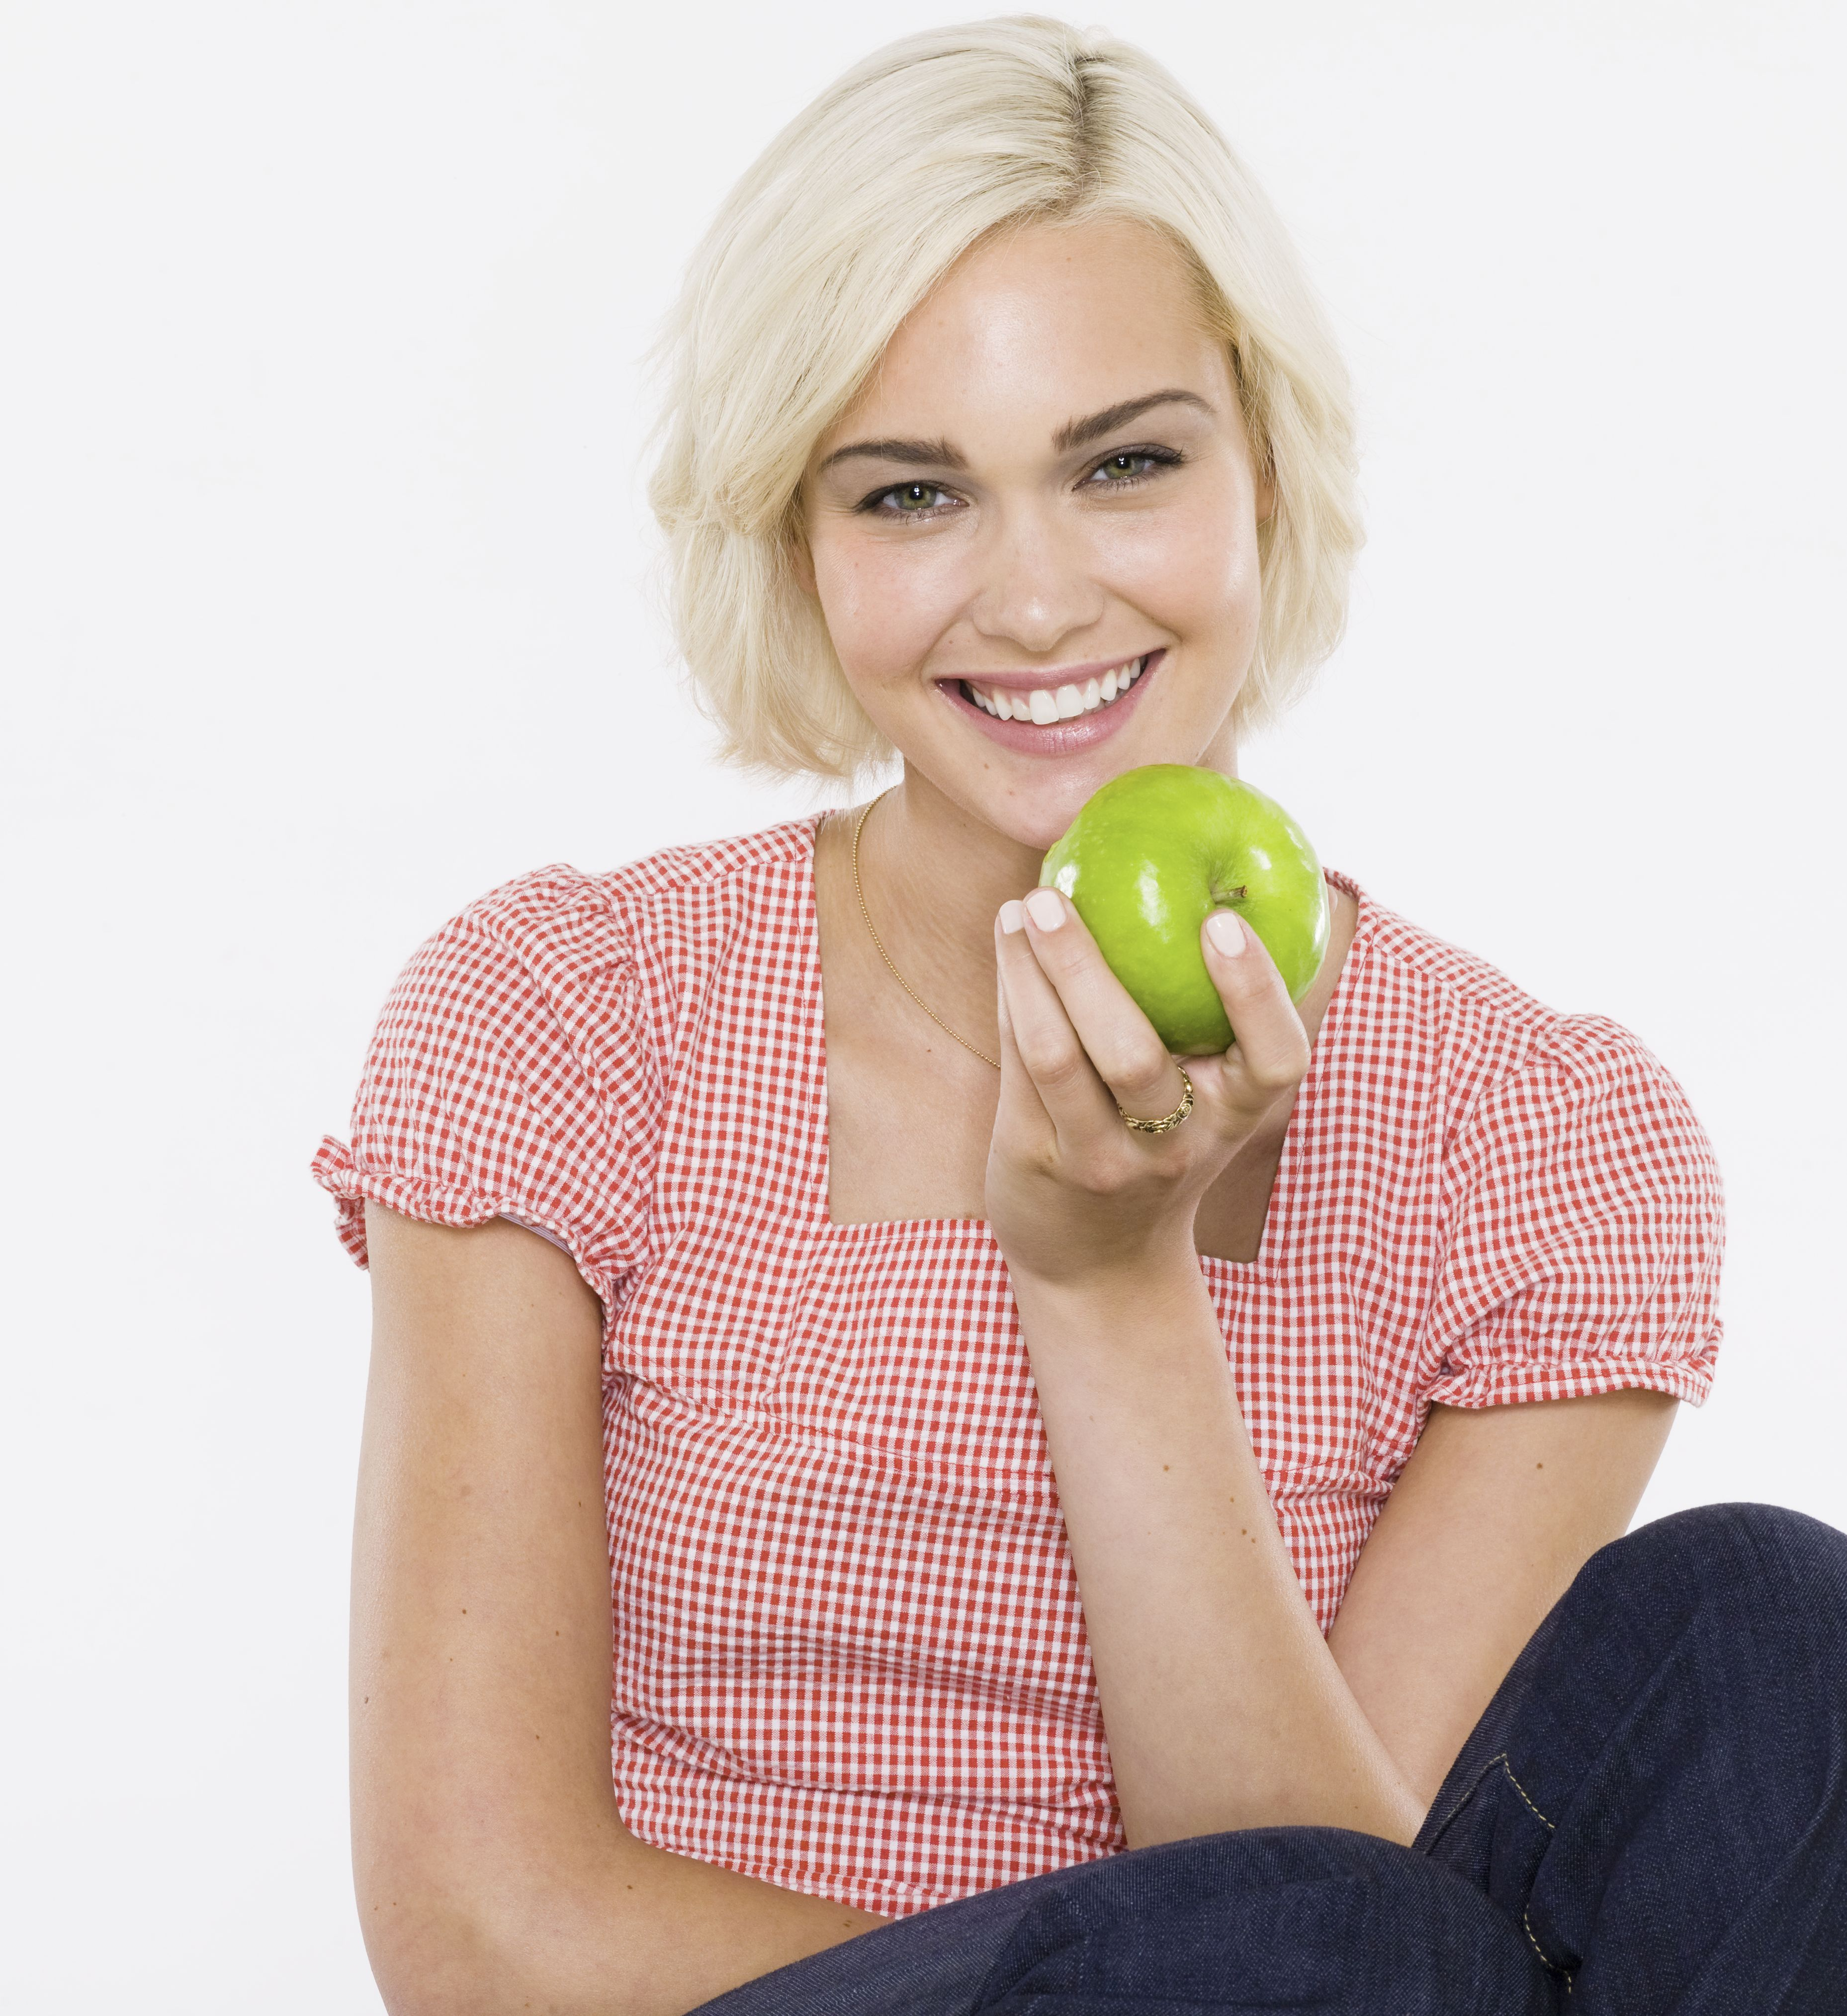 Eat Your Way to Healthy Teeth